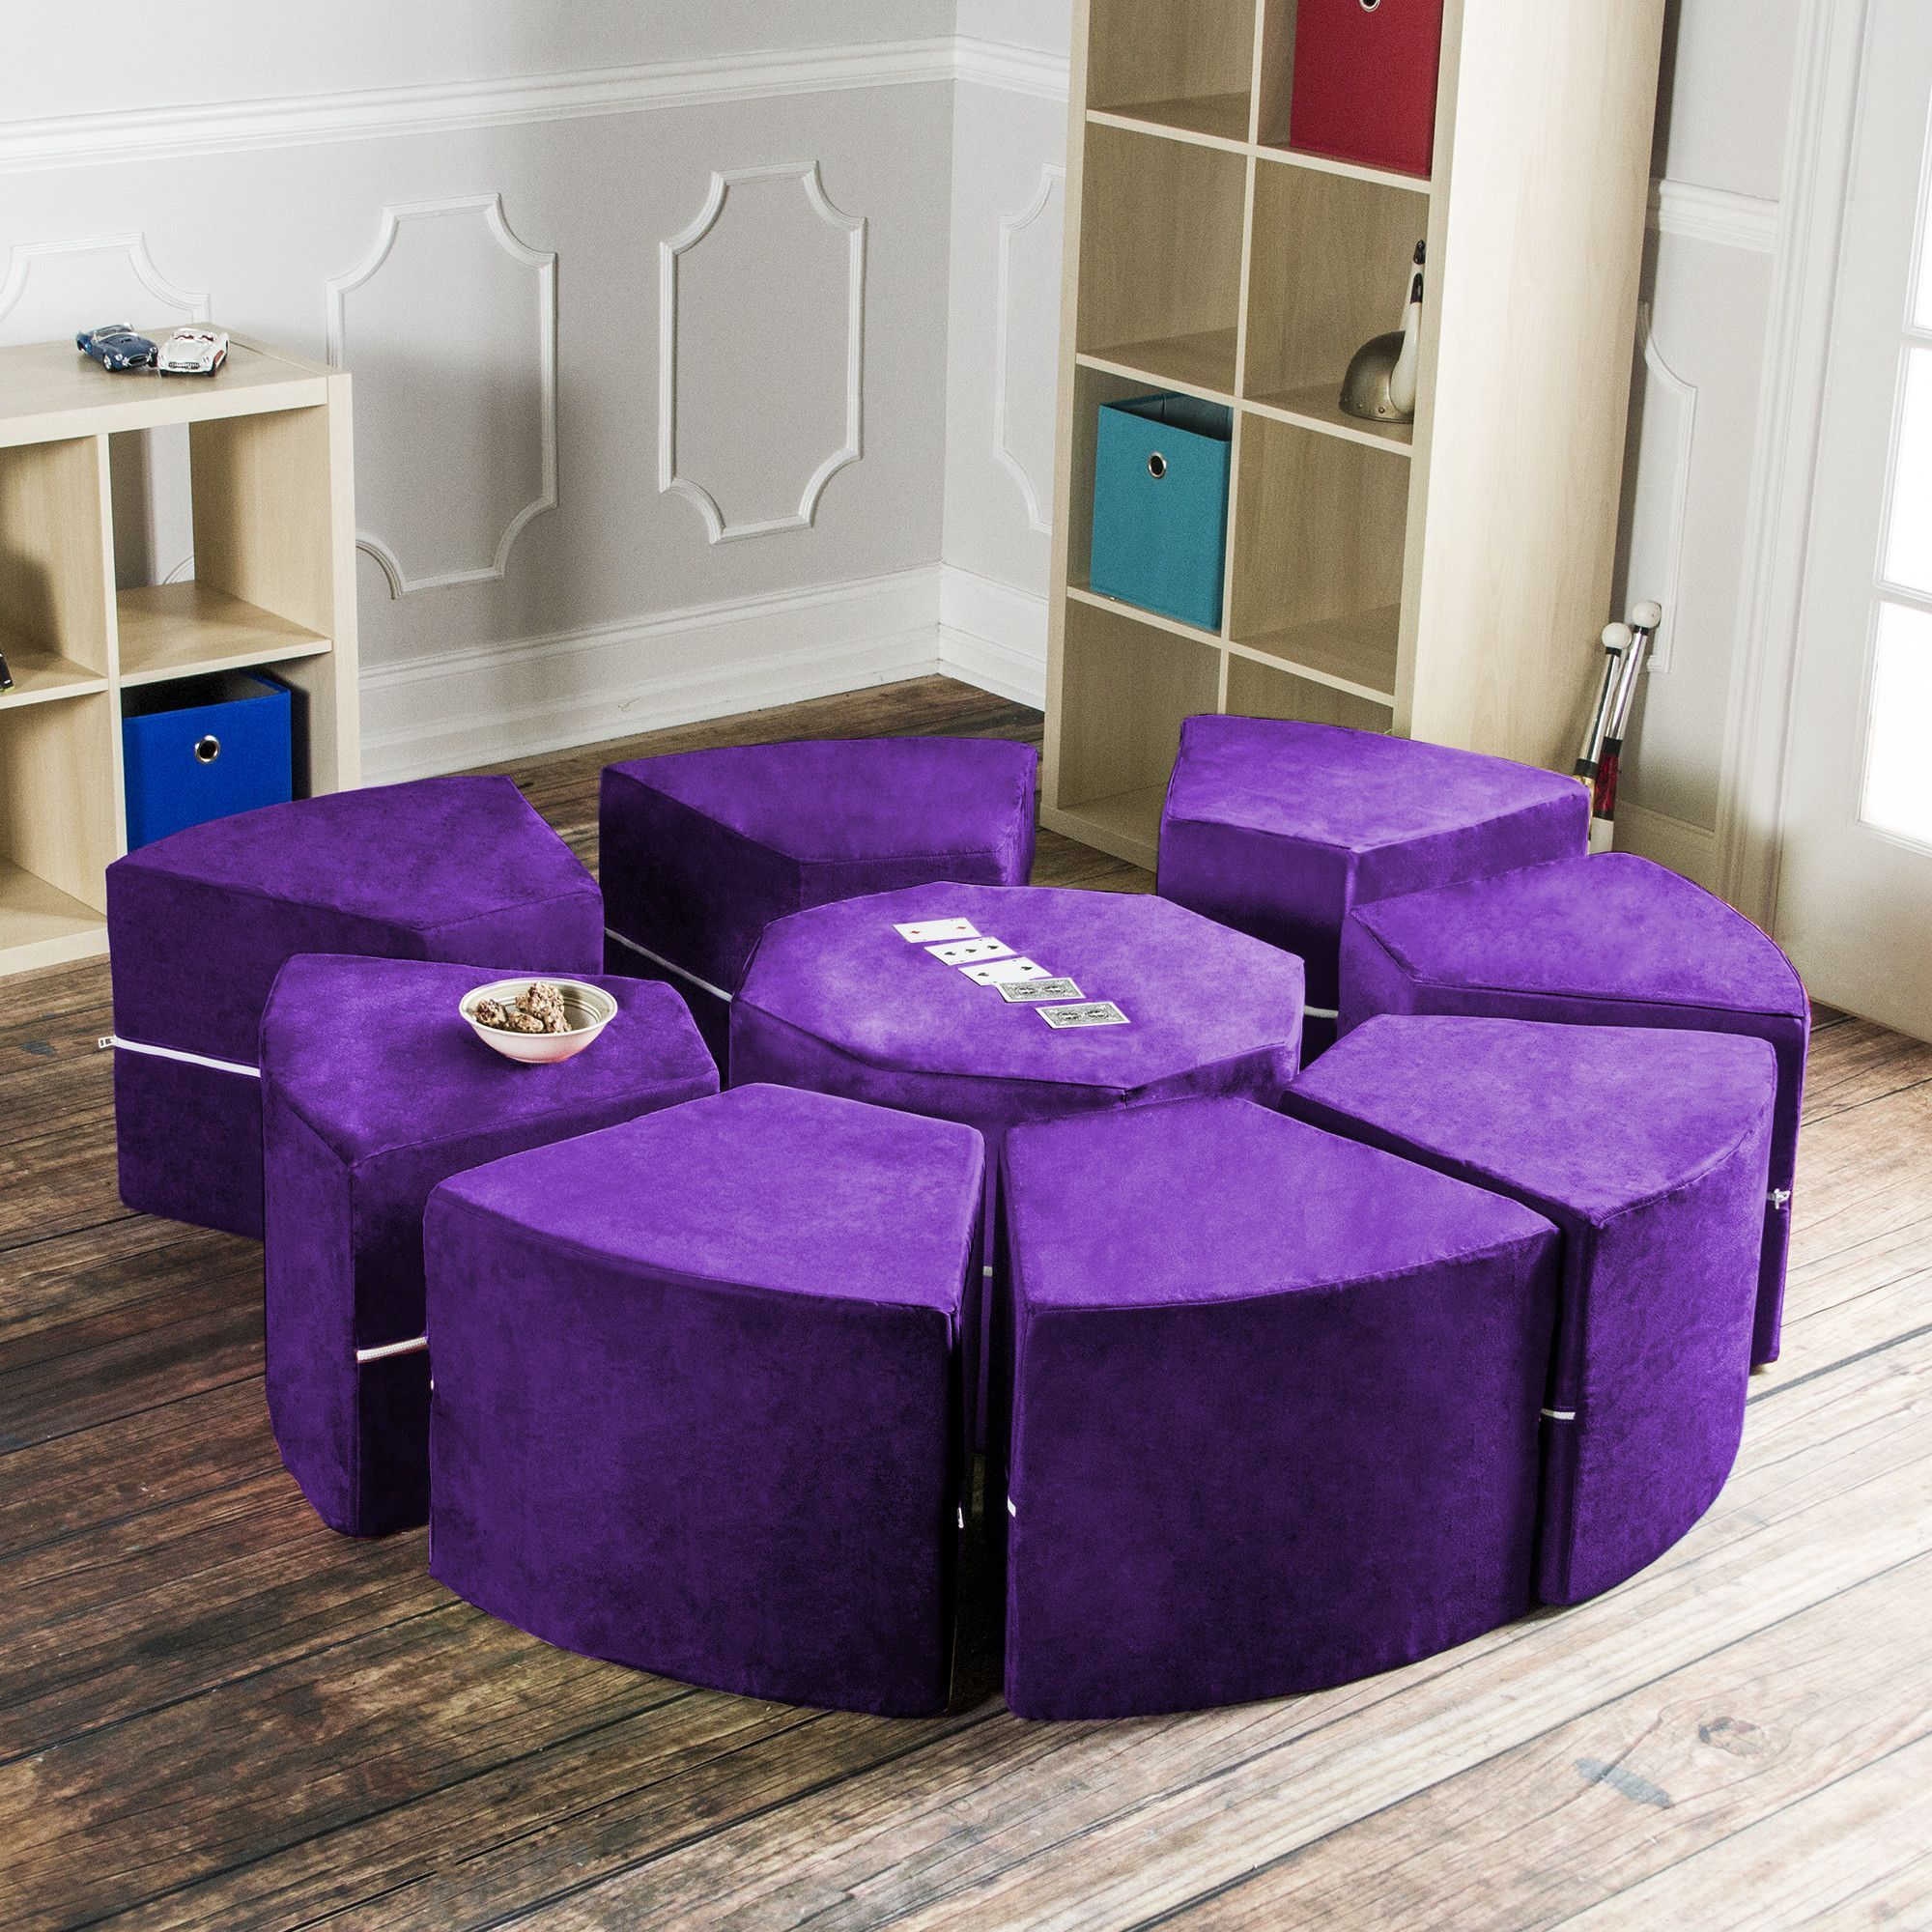 Jaxx Octagon Arrangement Kids Novelty Chair : kids sectional - Sectionals, Sofas & Couches